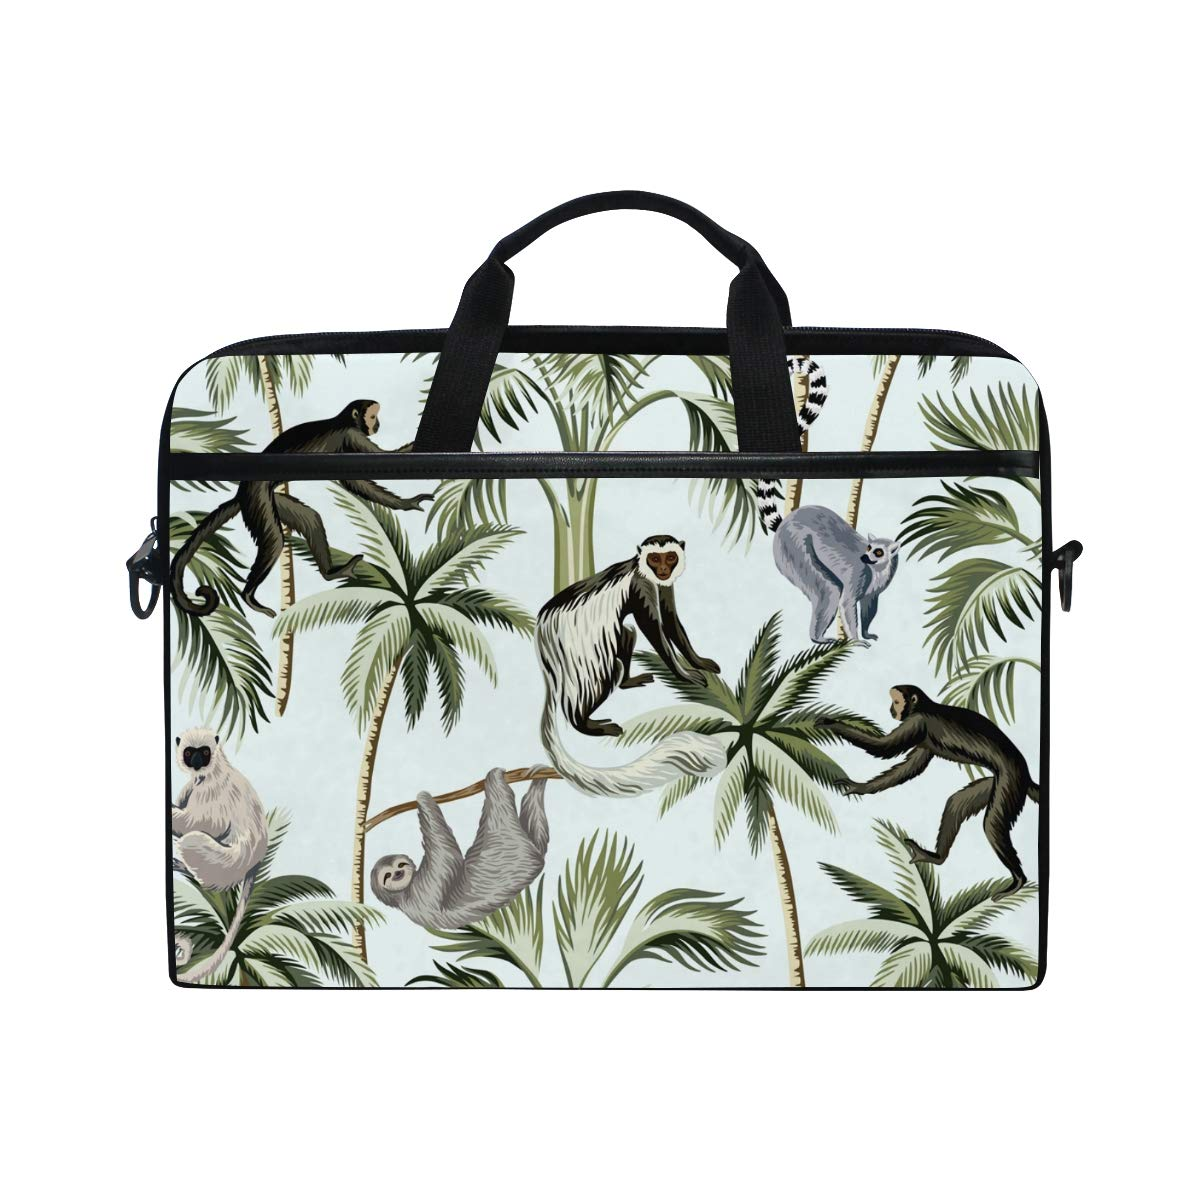 LIUBT Wild Animal Monkey Palm Tree Laptop Shoulder Messenger Bag Computer Briefcase Business Notebook Sleeve Cover Carrying Handle Bag for 14 inch to 15.4 inch